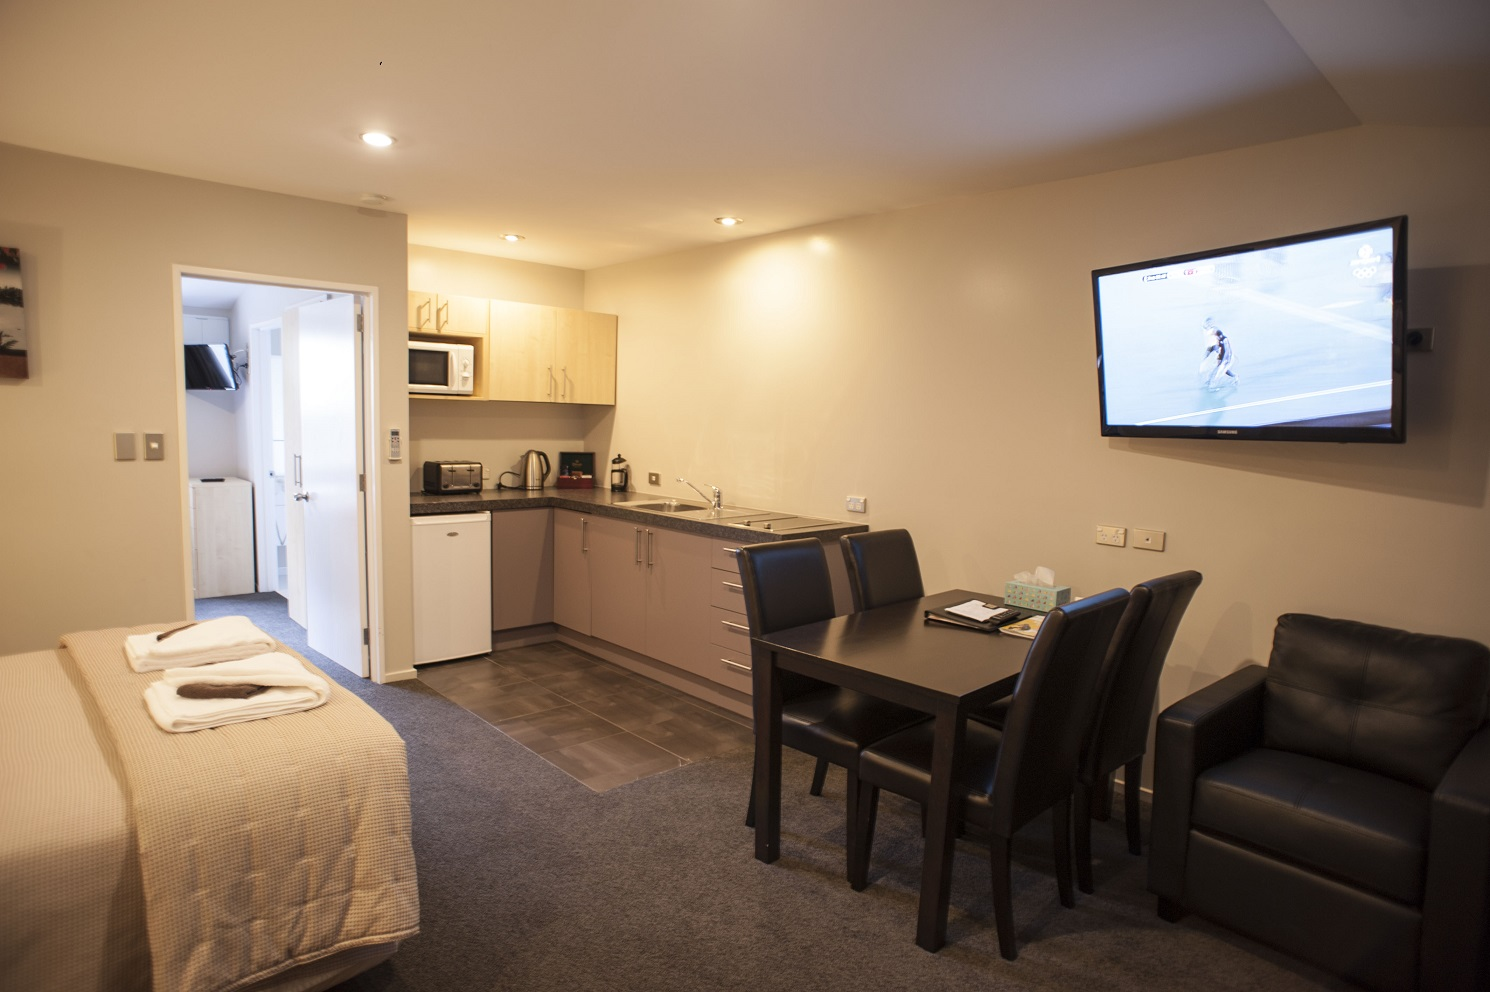 Christchurch luxury apartment qualmark 5 star 1 bedroom for 1 bedroom apartments